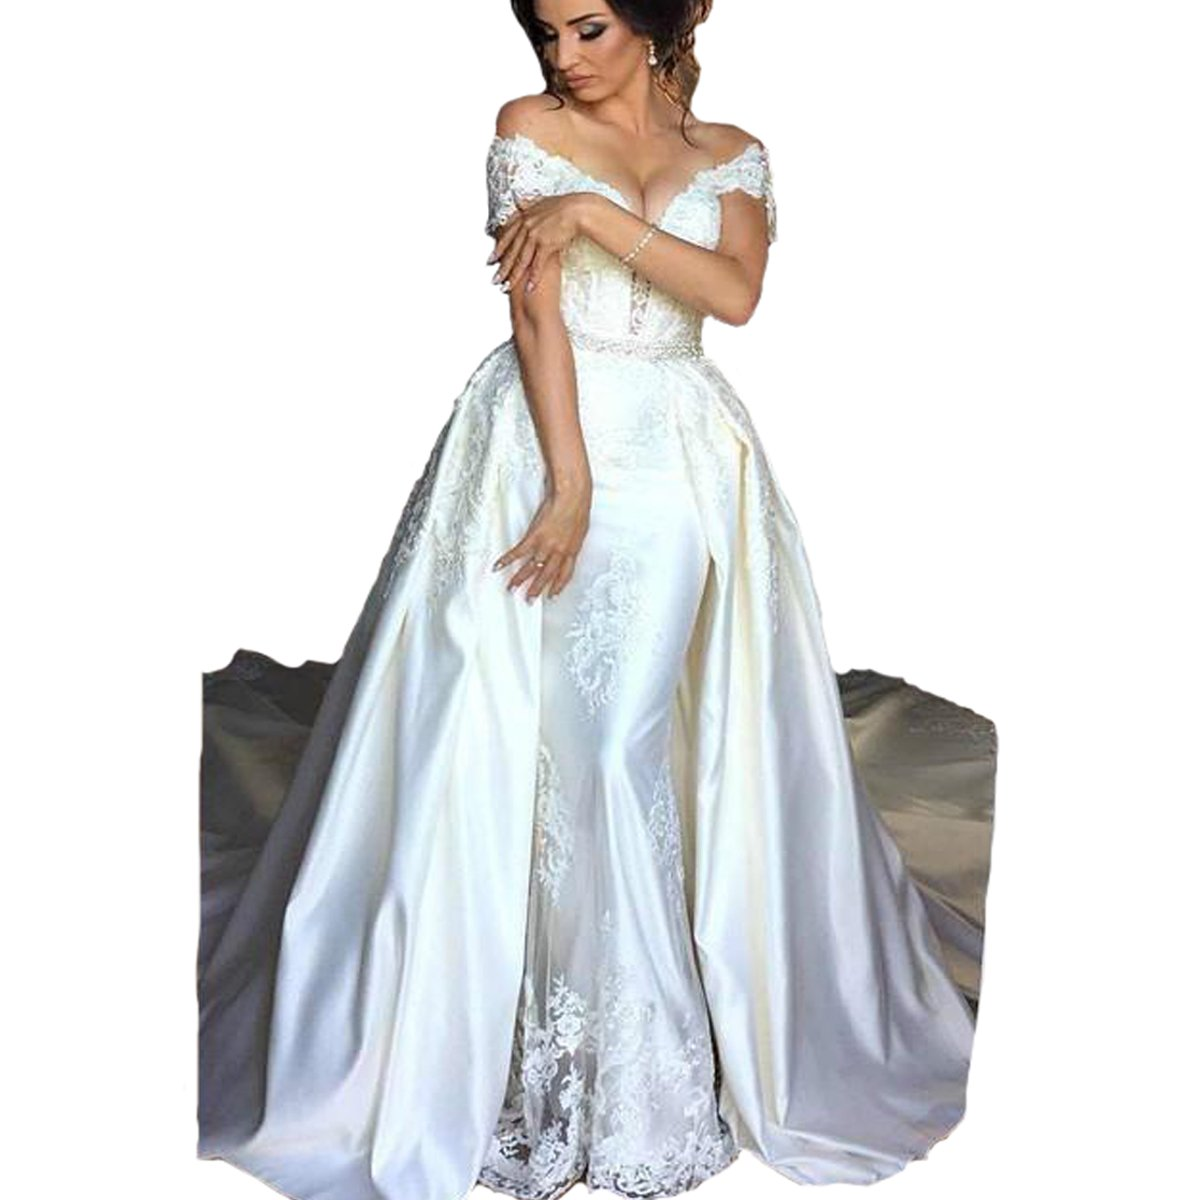 Fair Lady Sexy Lace Satin Mermaid Wedding Dresses V Neck Cap Sleeves